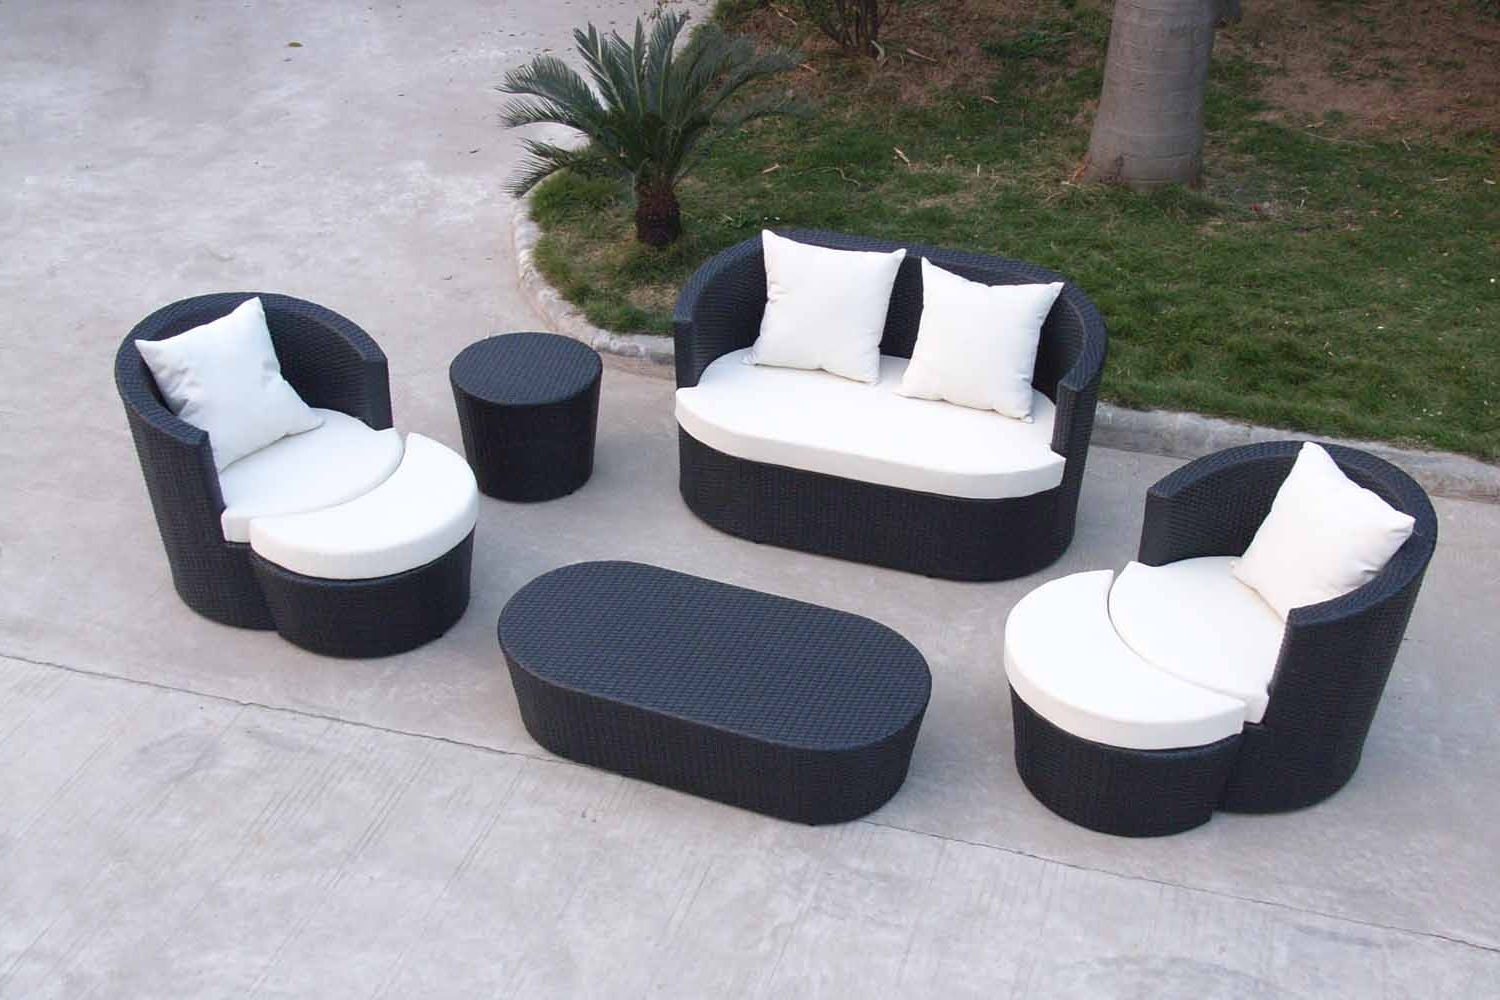 Outdoor Sofas And Chairs Pertaining To Well Liked Sofa Design Ideas: Outdoor Couches Patio Furniture Sofa Chair Sets (View 15 of 20)